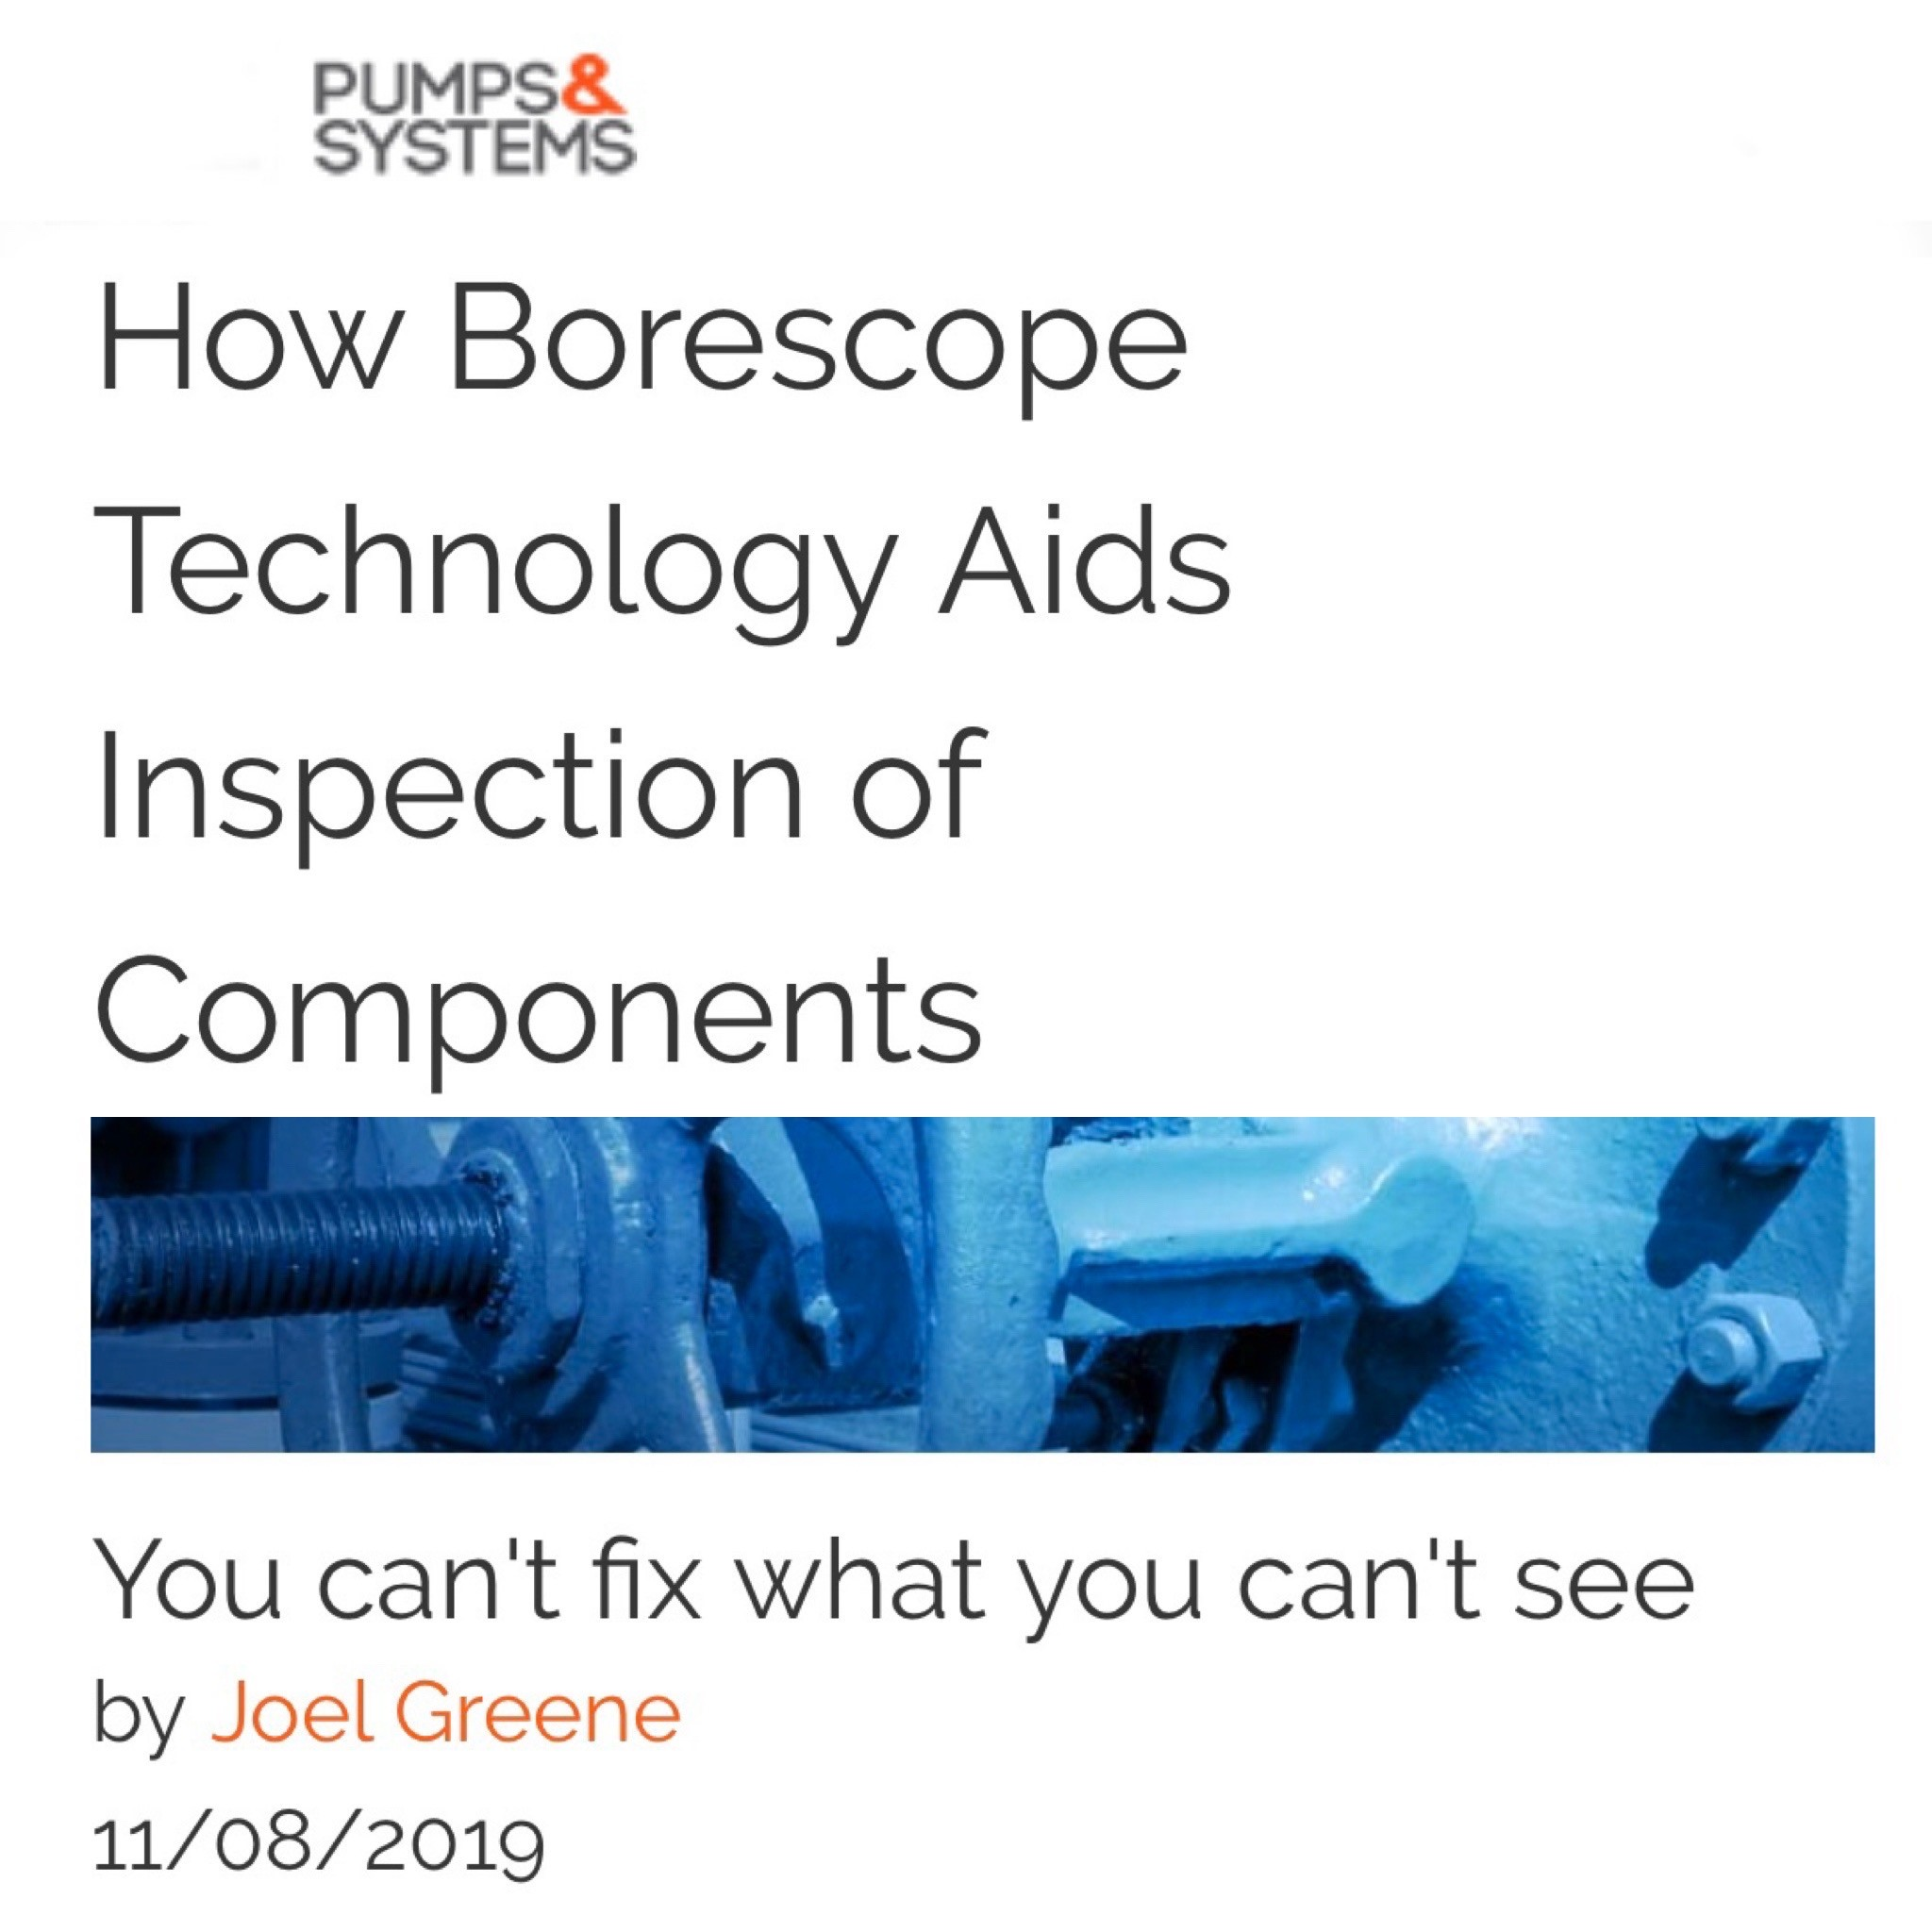 Pumps & Systems How Borescope Technology Aids Inspection of Components